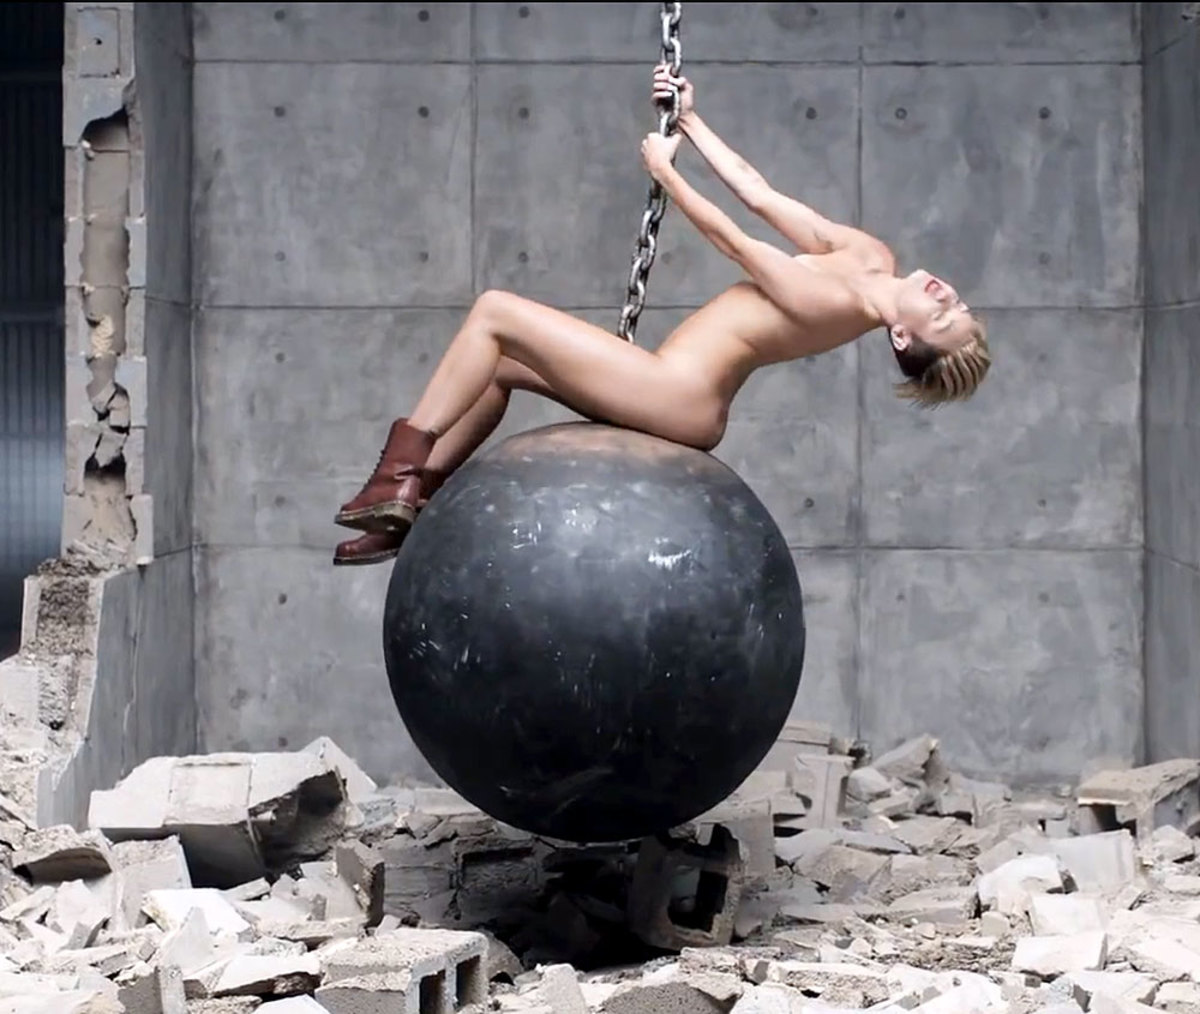 Miley Cyrus swings herself on the wrecking ball without anything to cover her nude body.